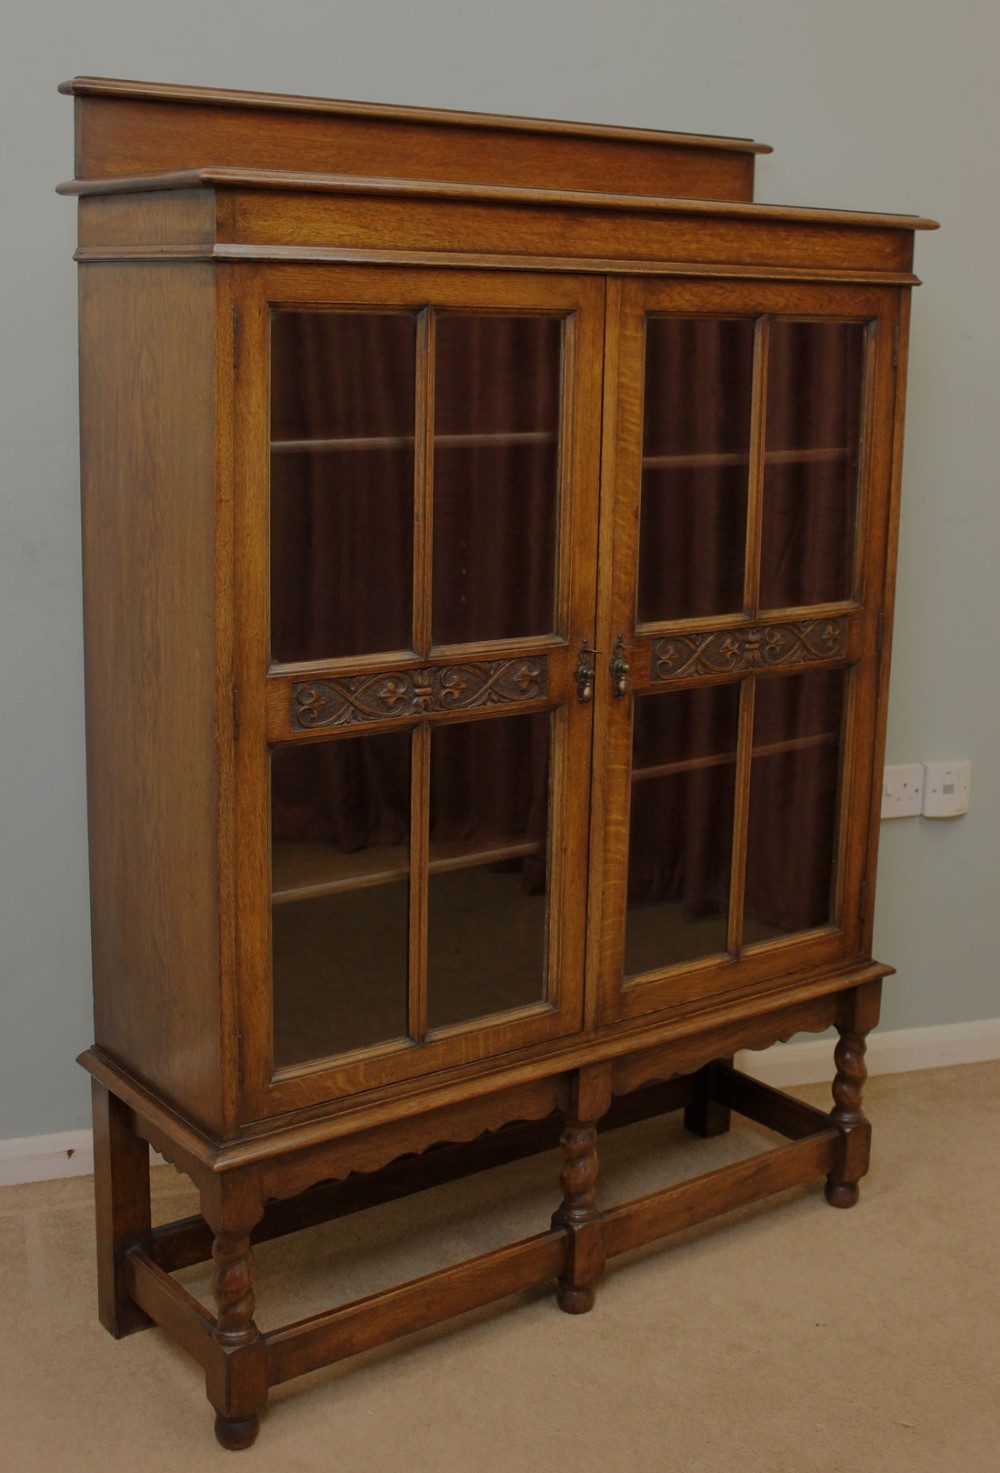 antique oak glazed bookcase display cabinet - Antique Oak Glazed Bookcase, Display Cabinet 260194